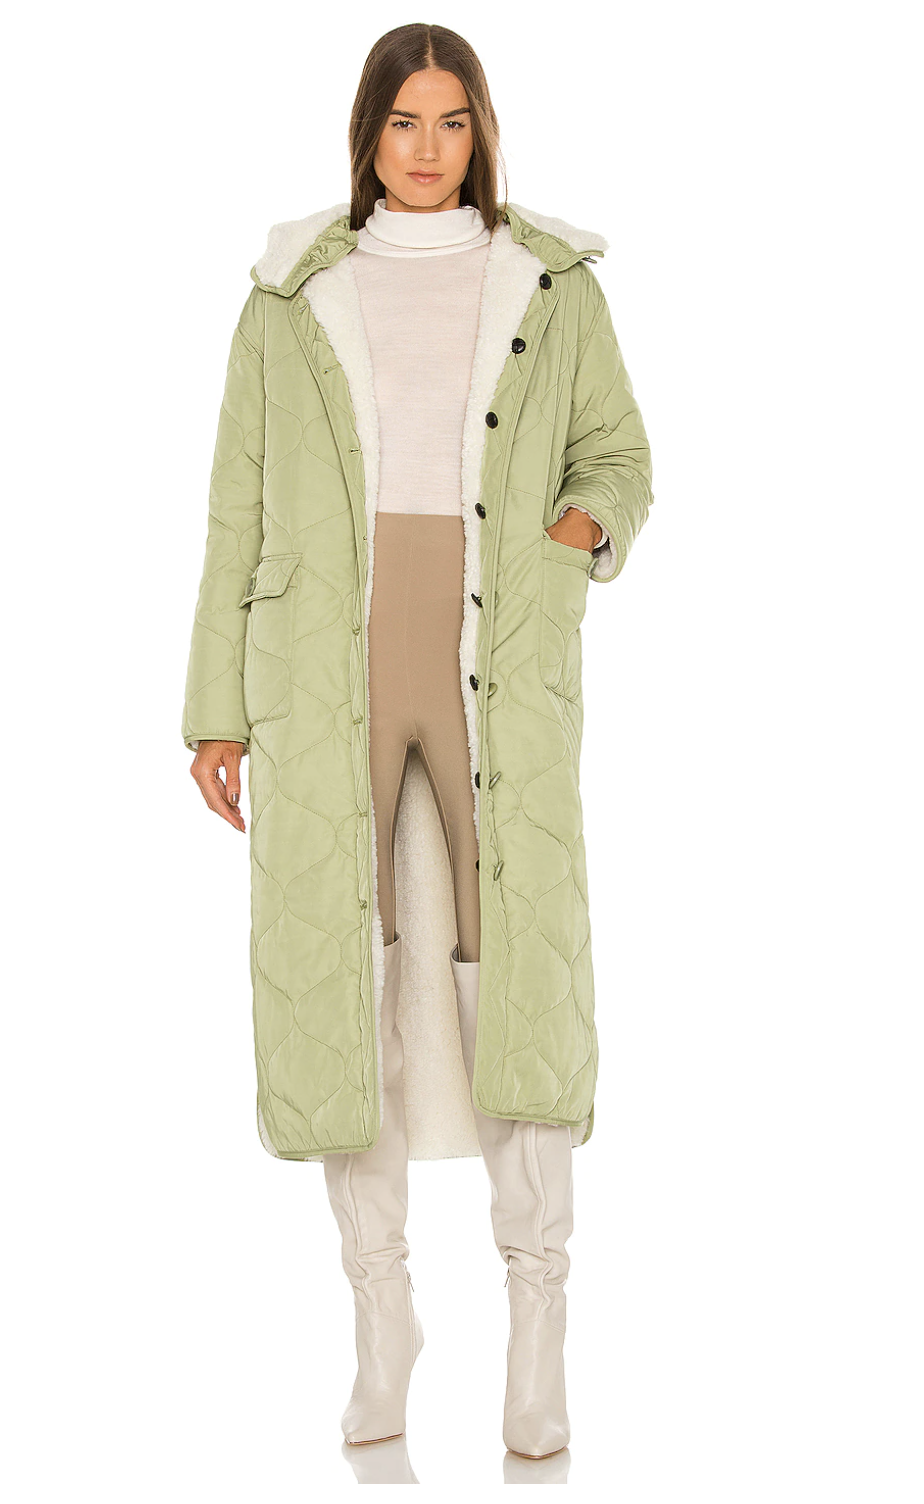 Eaves Layla Coat in light green with white boots